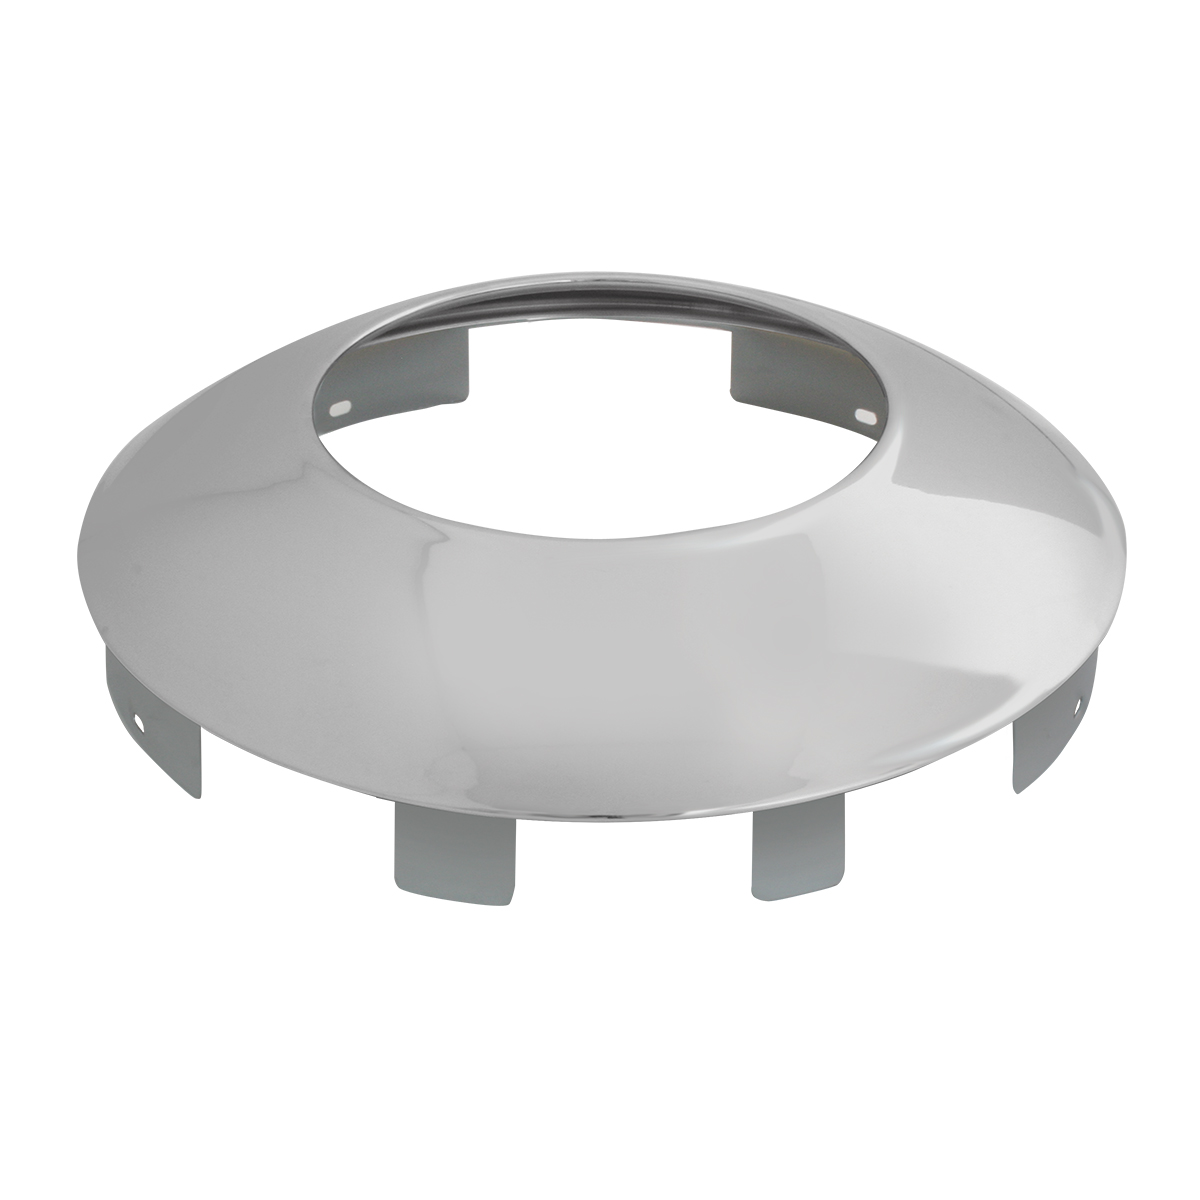 "Chrome Plated 1"" Universal Front Notched Hubdometer Cap"